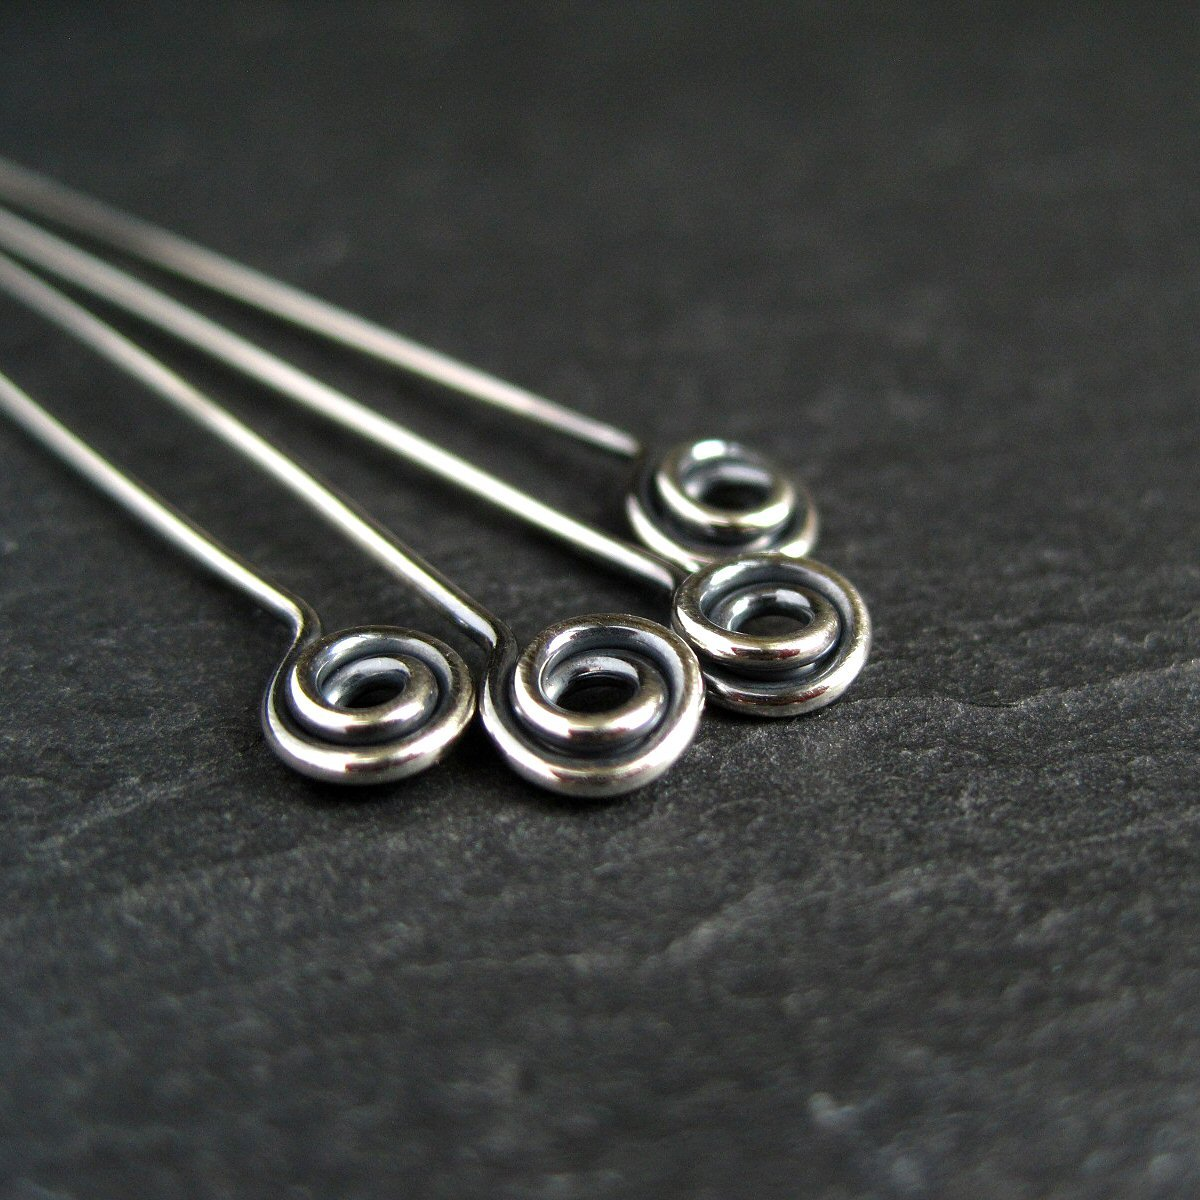 Oxidized Sterling Silver Swirl Headpins